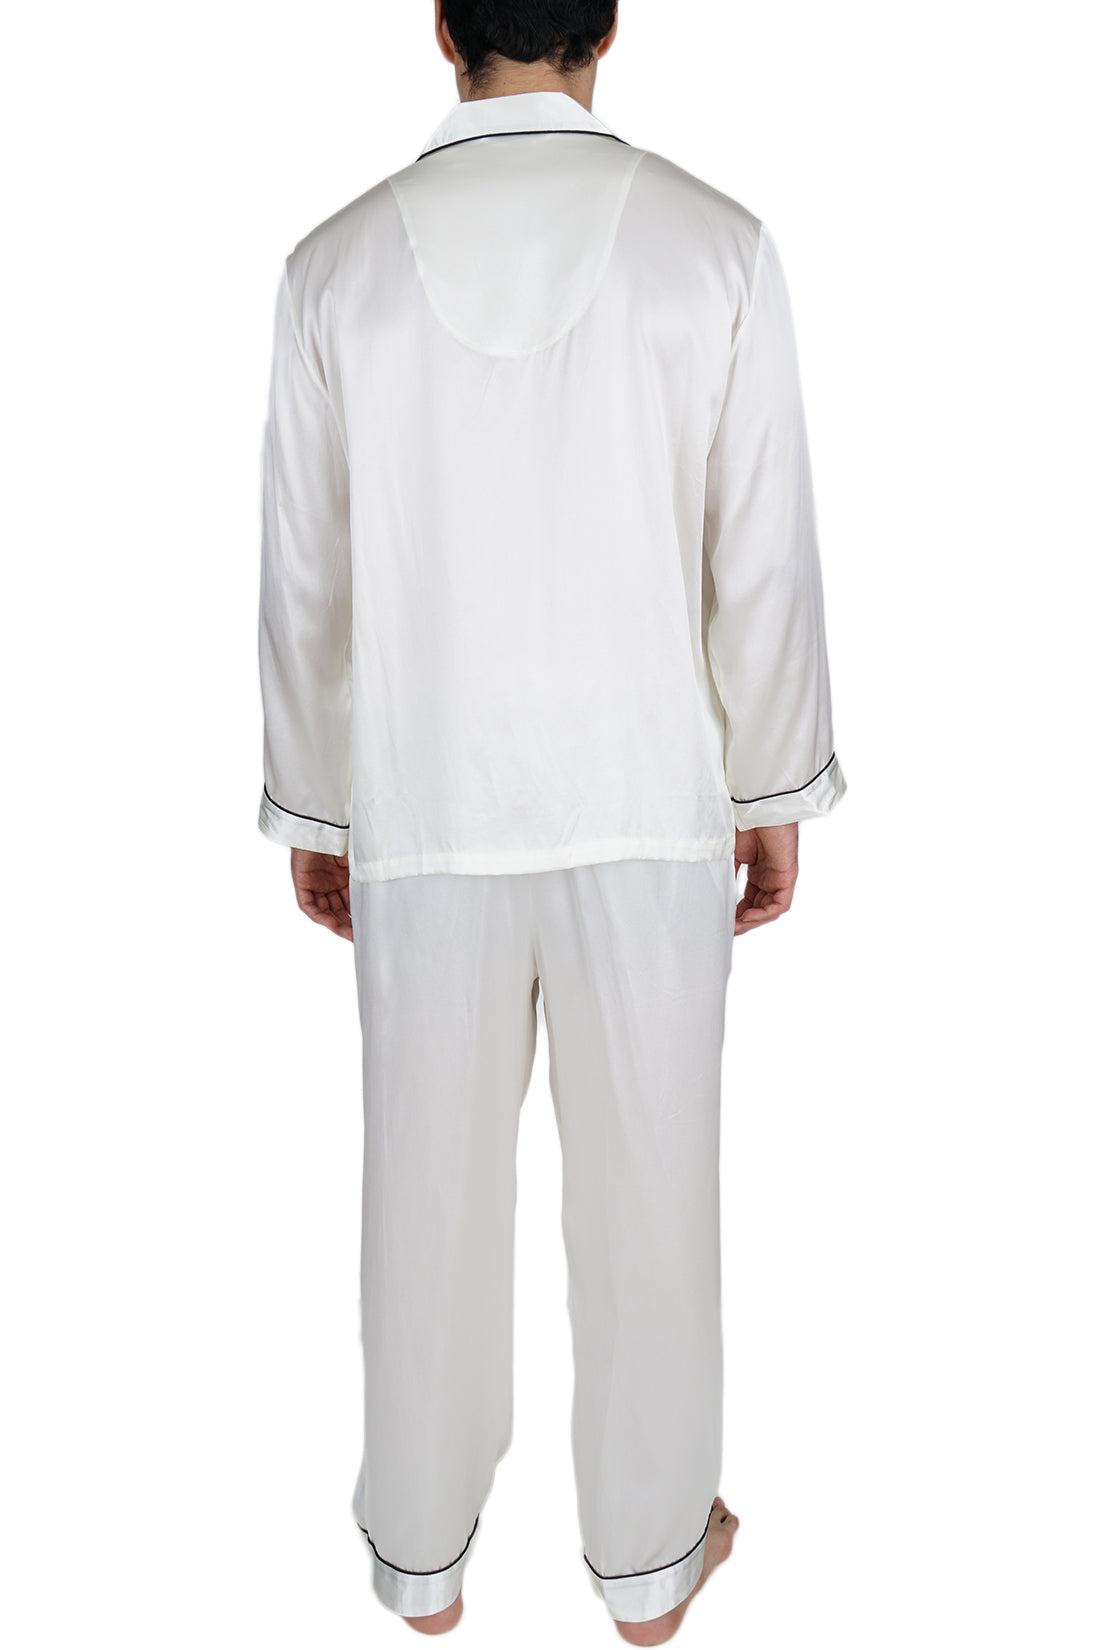 Men's Silk Sleepwear 100% Silk Pajamas Set -OSCAR ROSSA